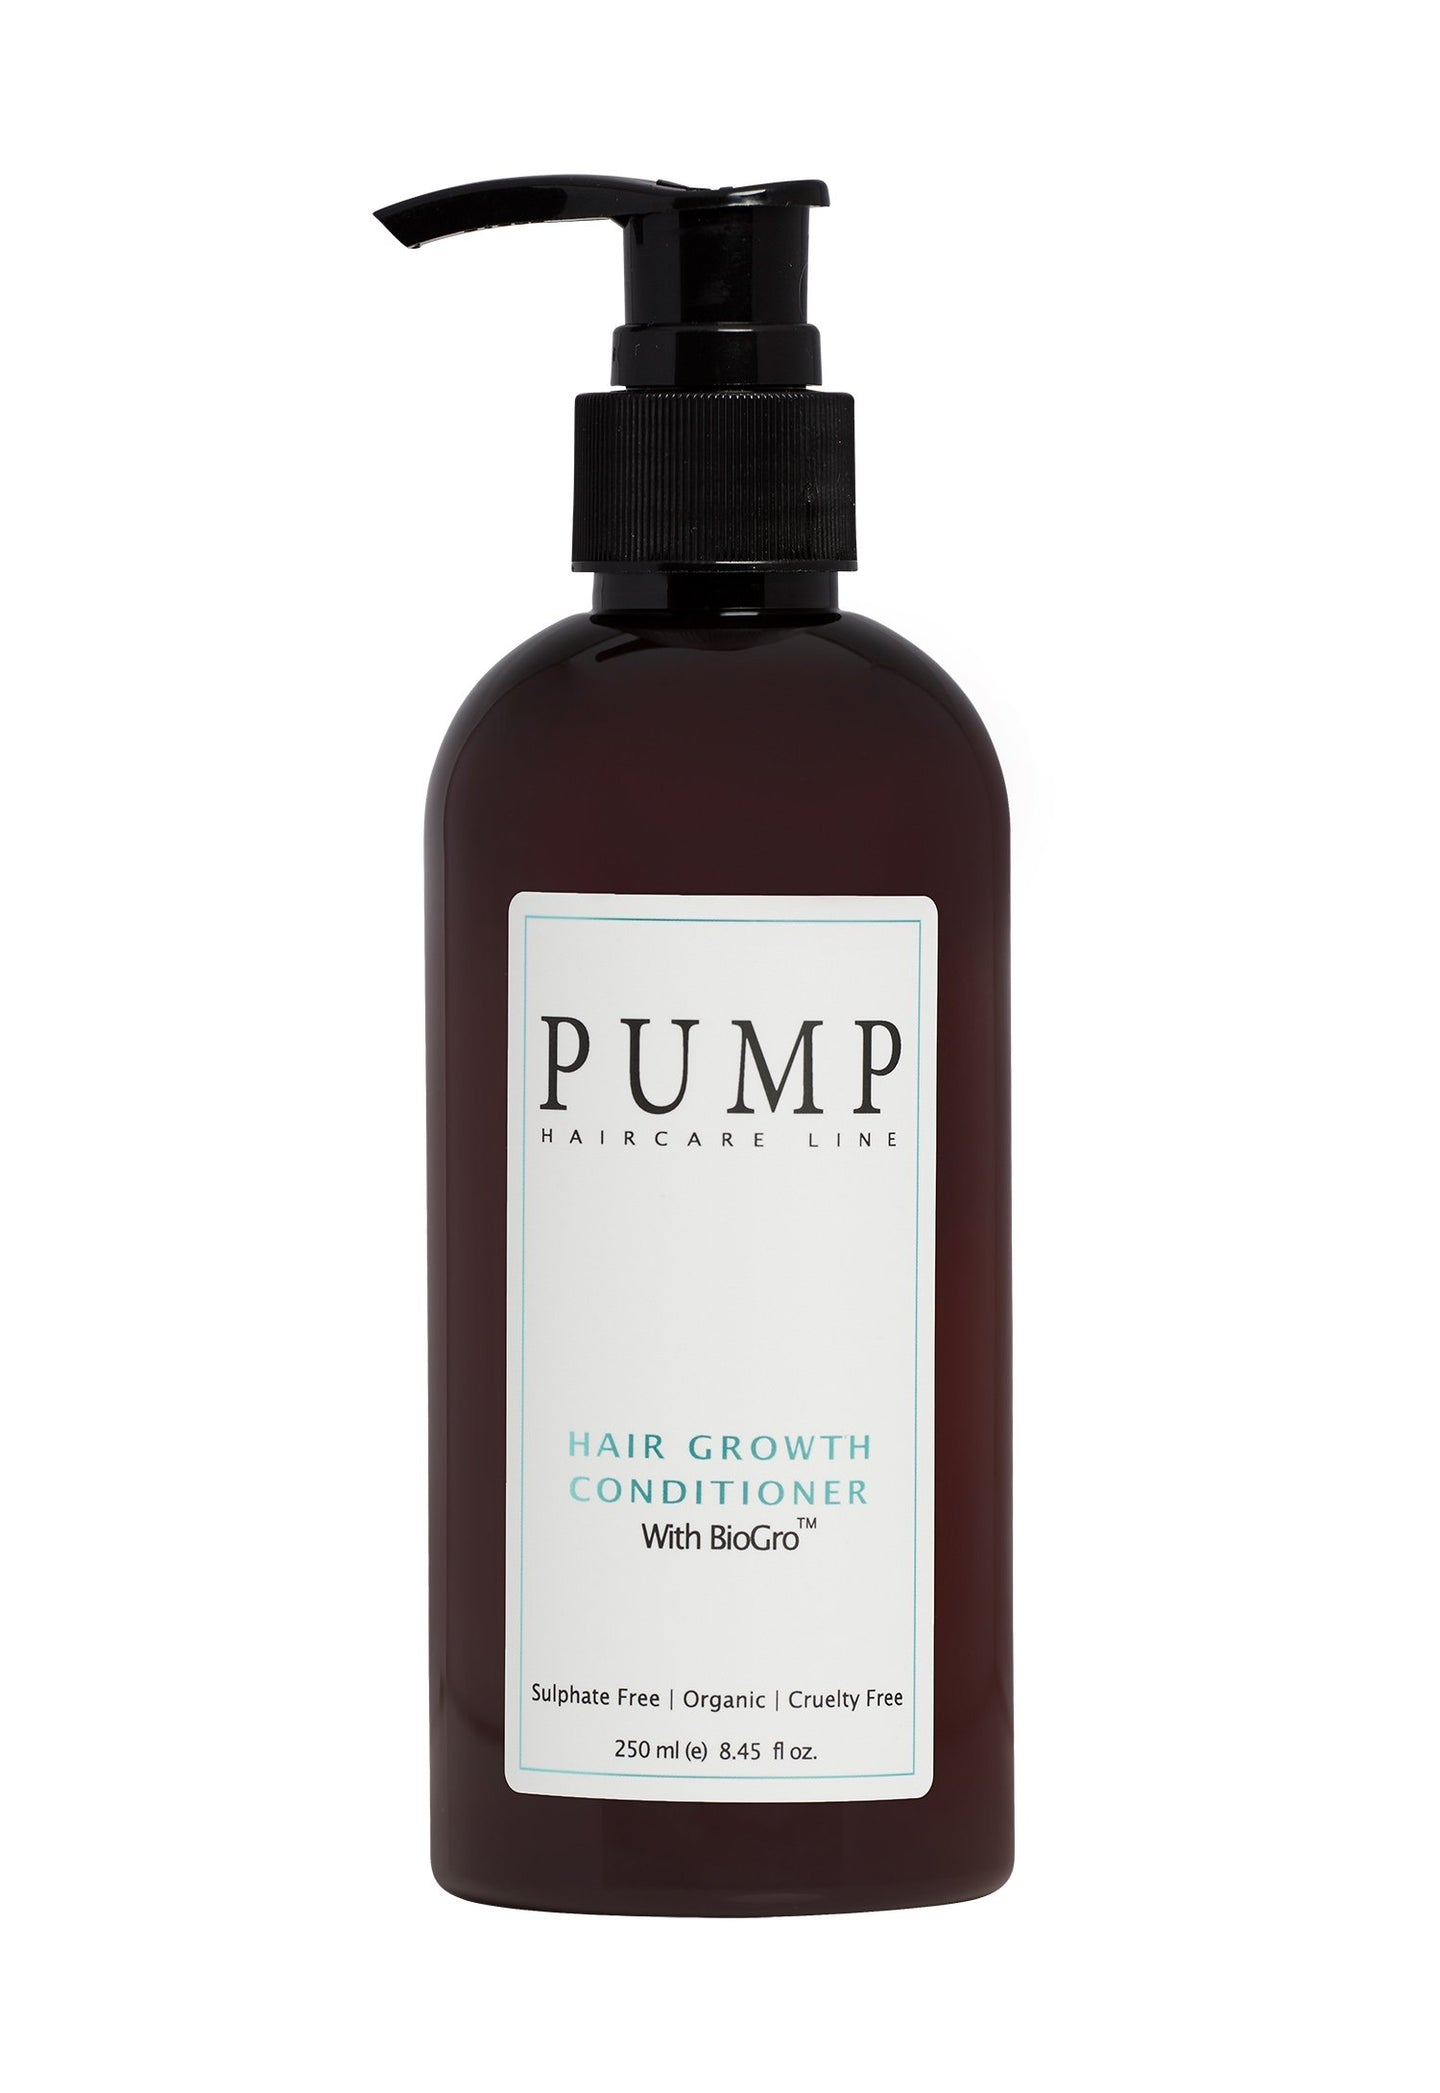 Pump Hair Growth Conditioner